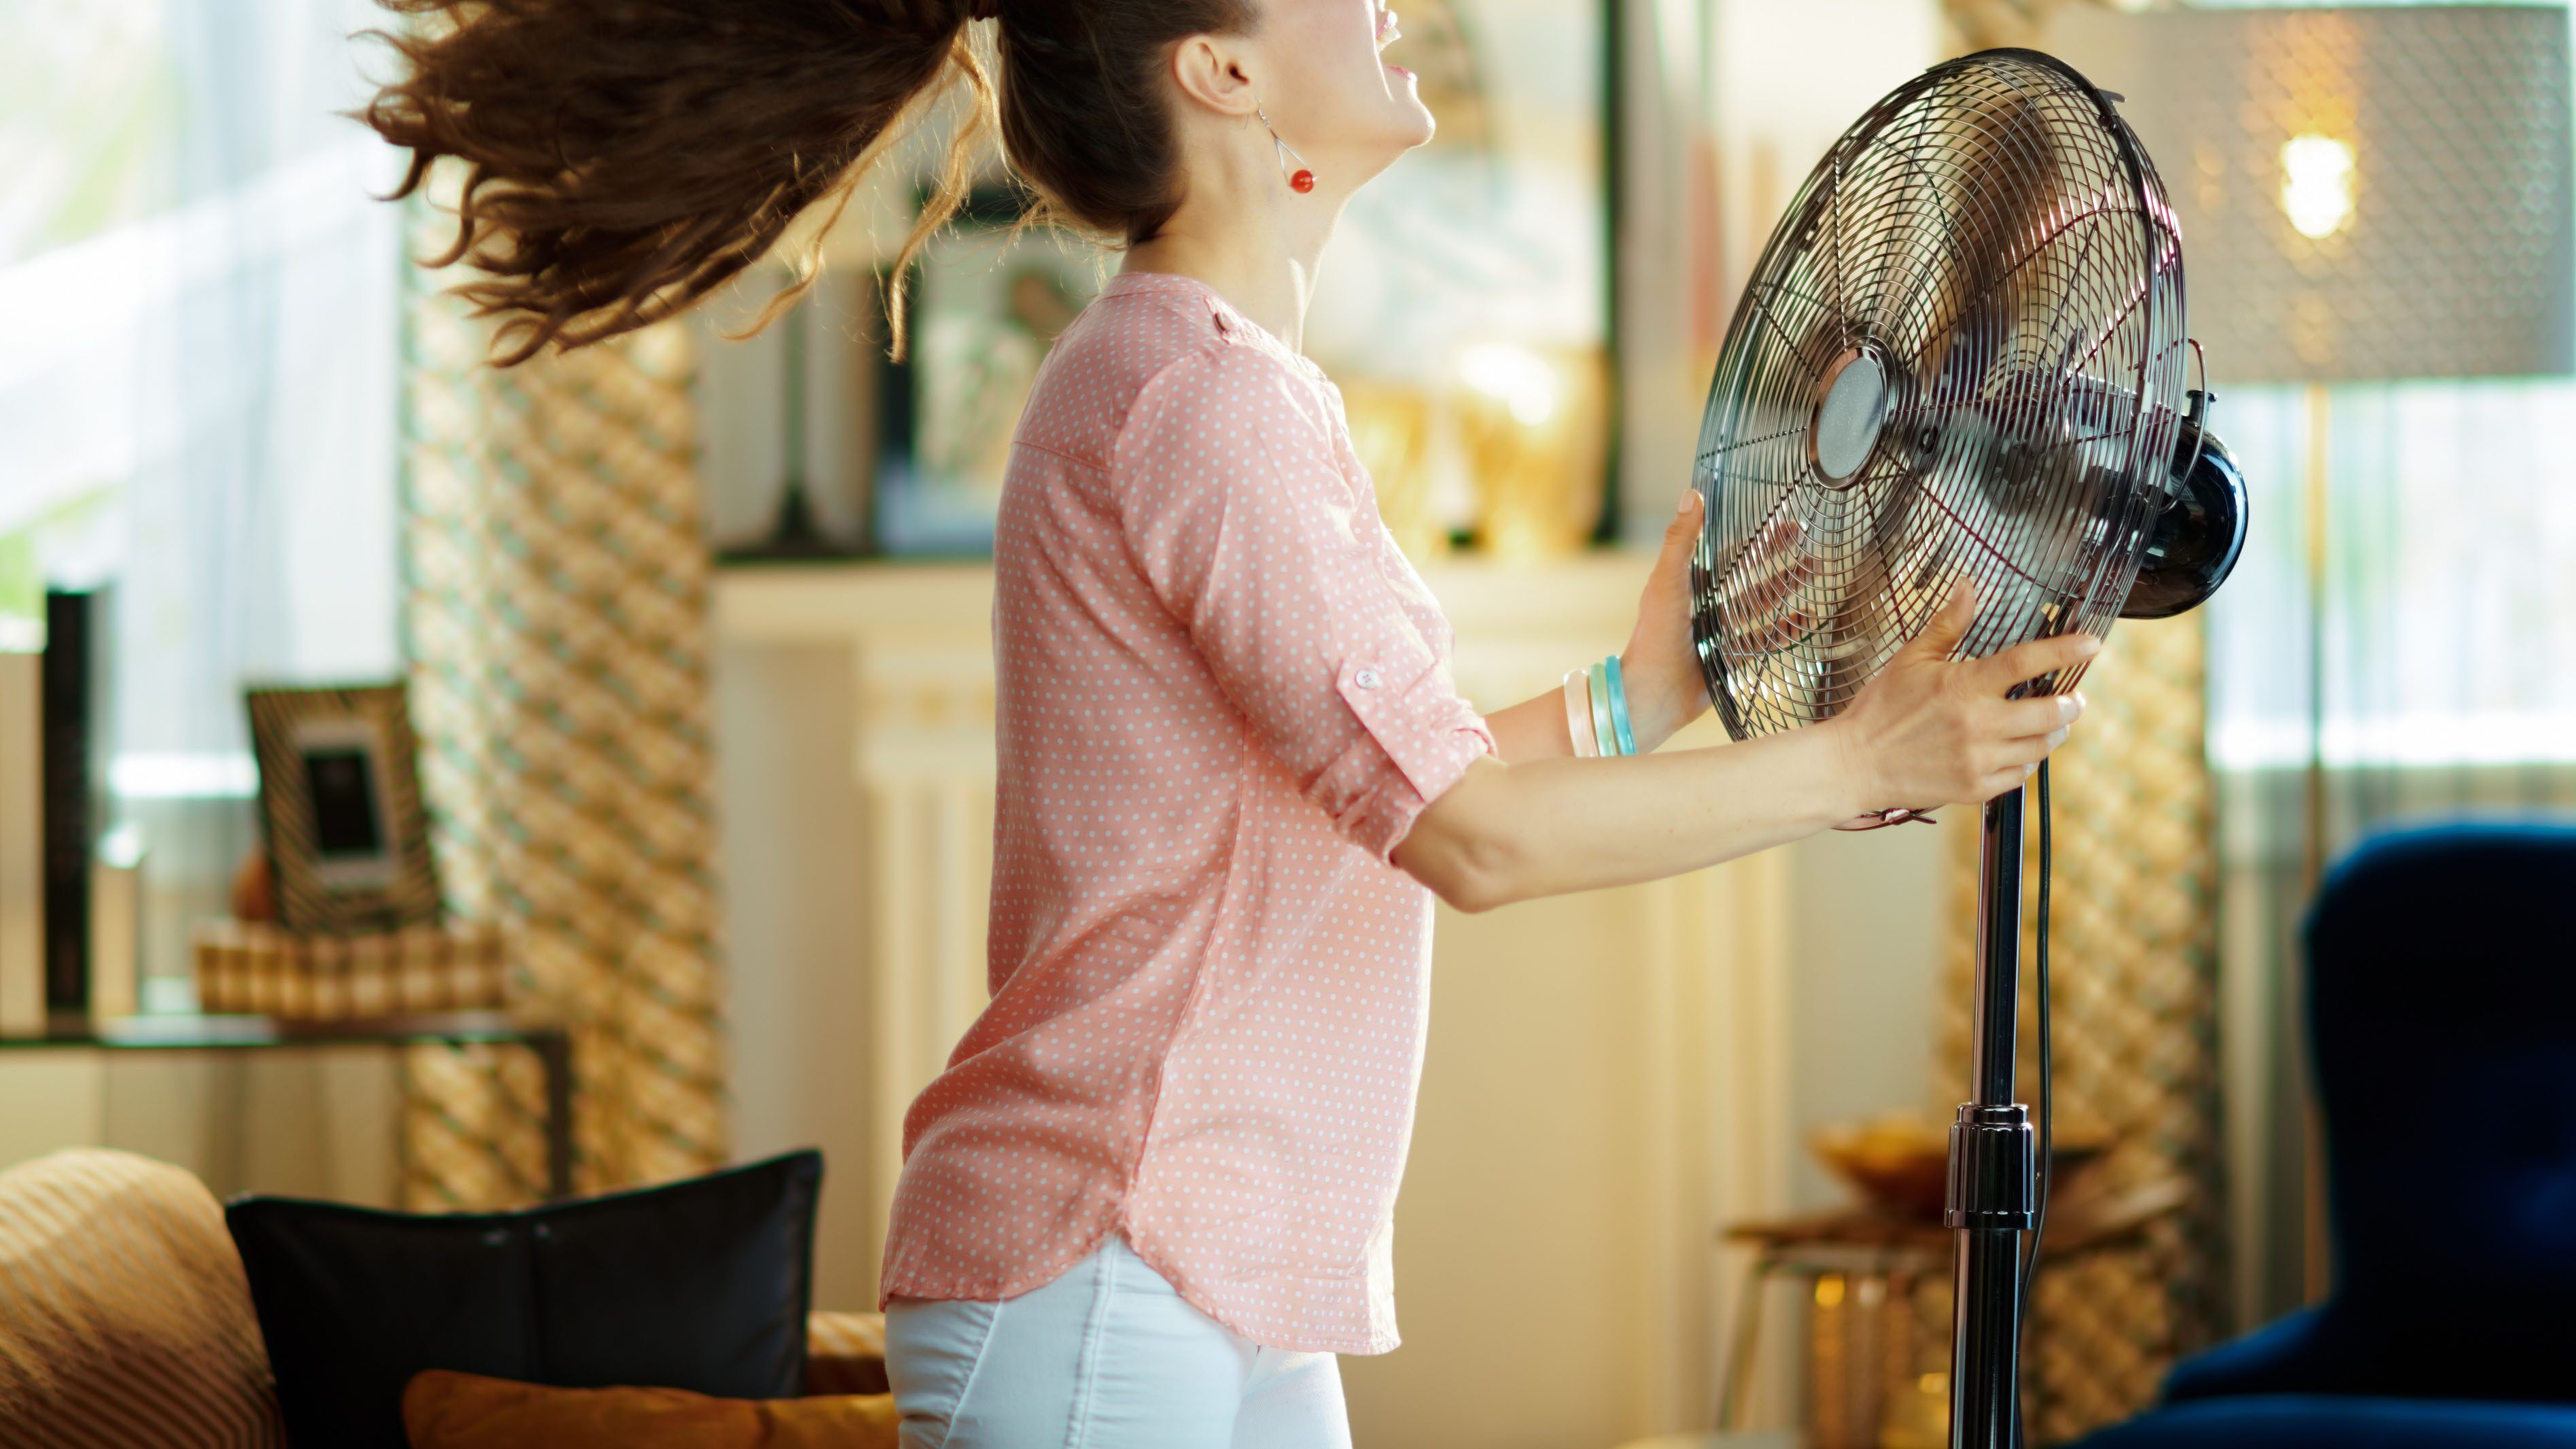 Inexpensive air conditioning alternatives to beat the